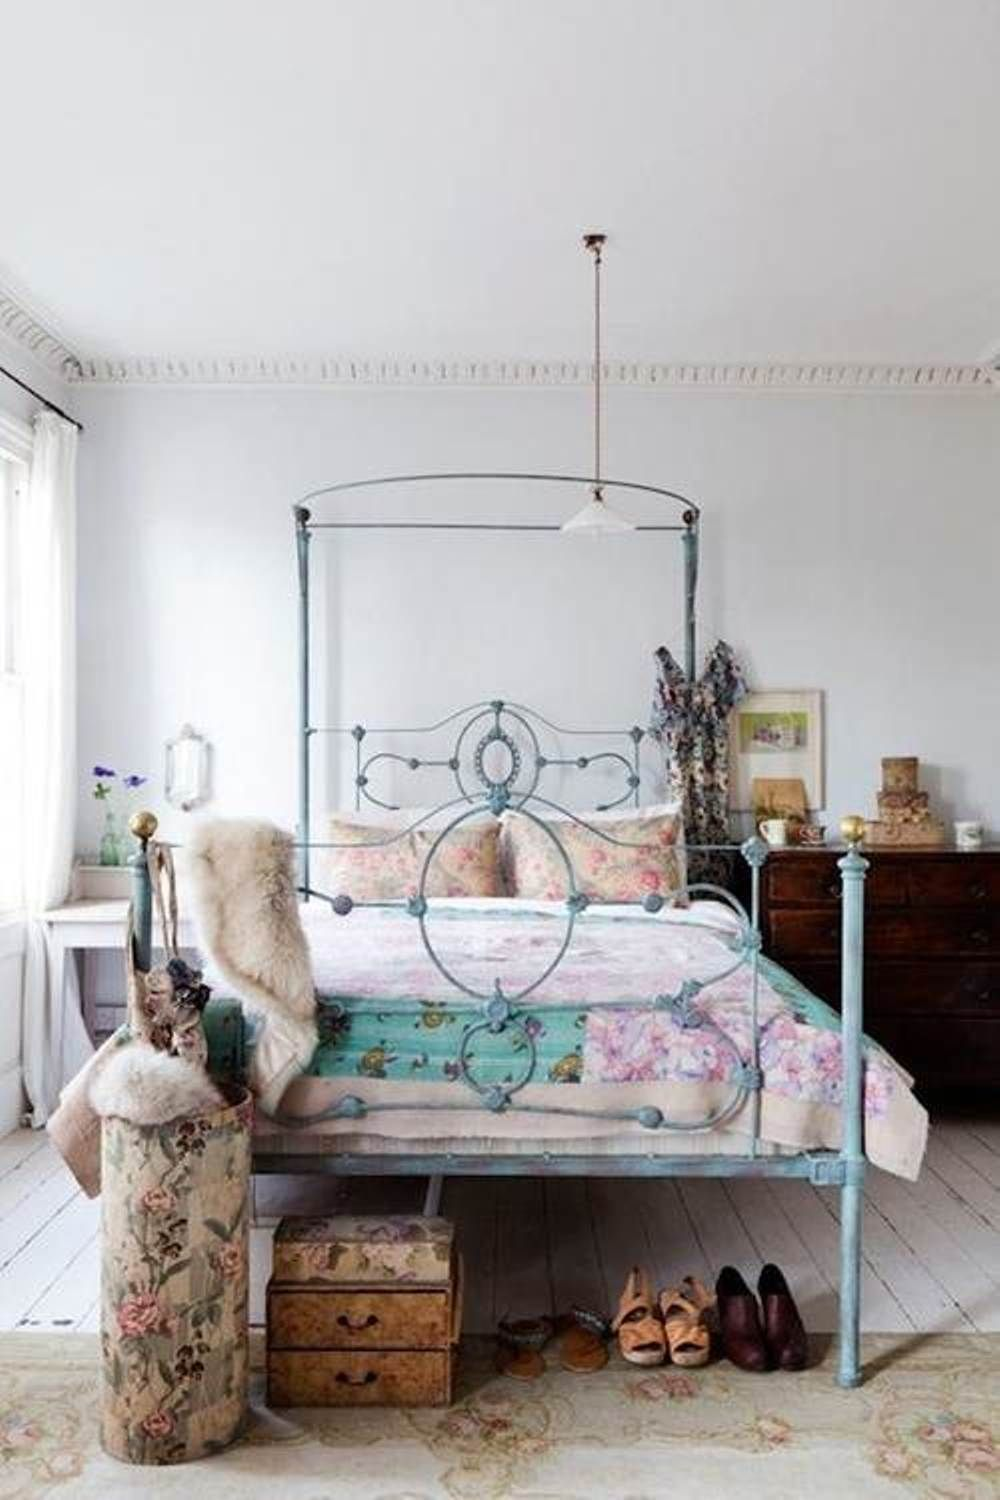 eclectic bedroom decorating ideas for women | Room design ... on pagan decorating ideas, pizza decorating ideas, italian decorating ideas, contemporary decorating ideas, fun decorating ideas, egyptian decorating ideas, unique decorating ideas, simple decorating ideas, classic decorating ideas, art decorating ideas,